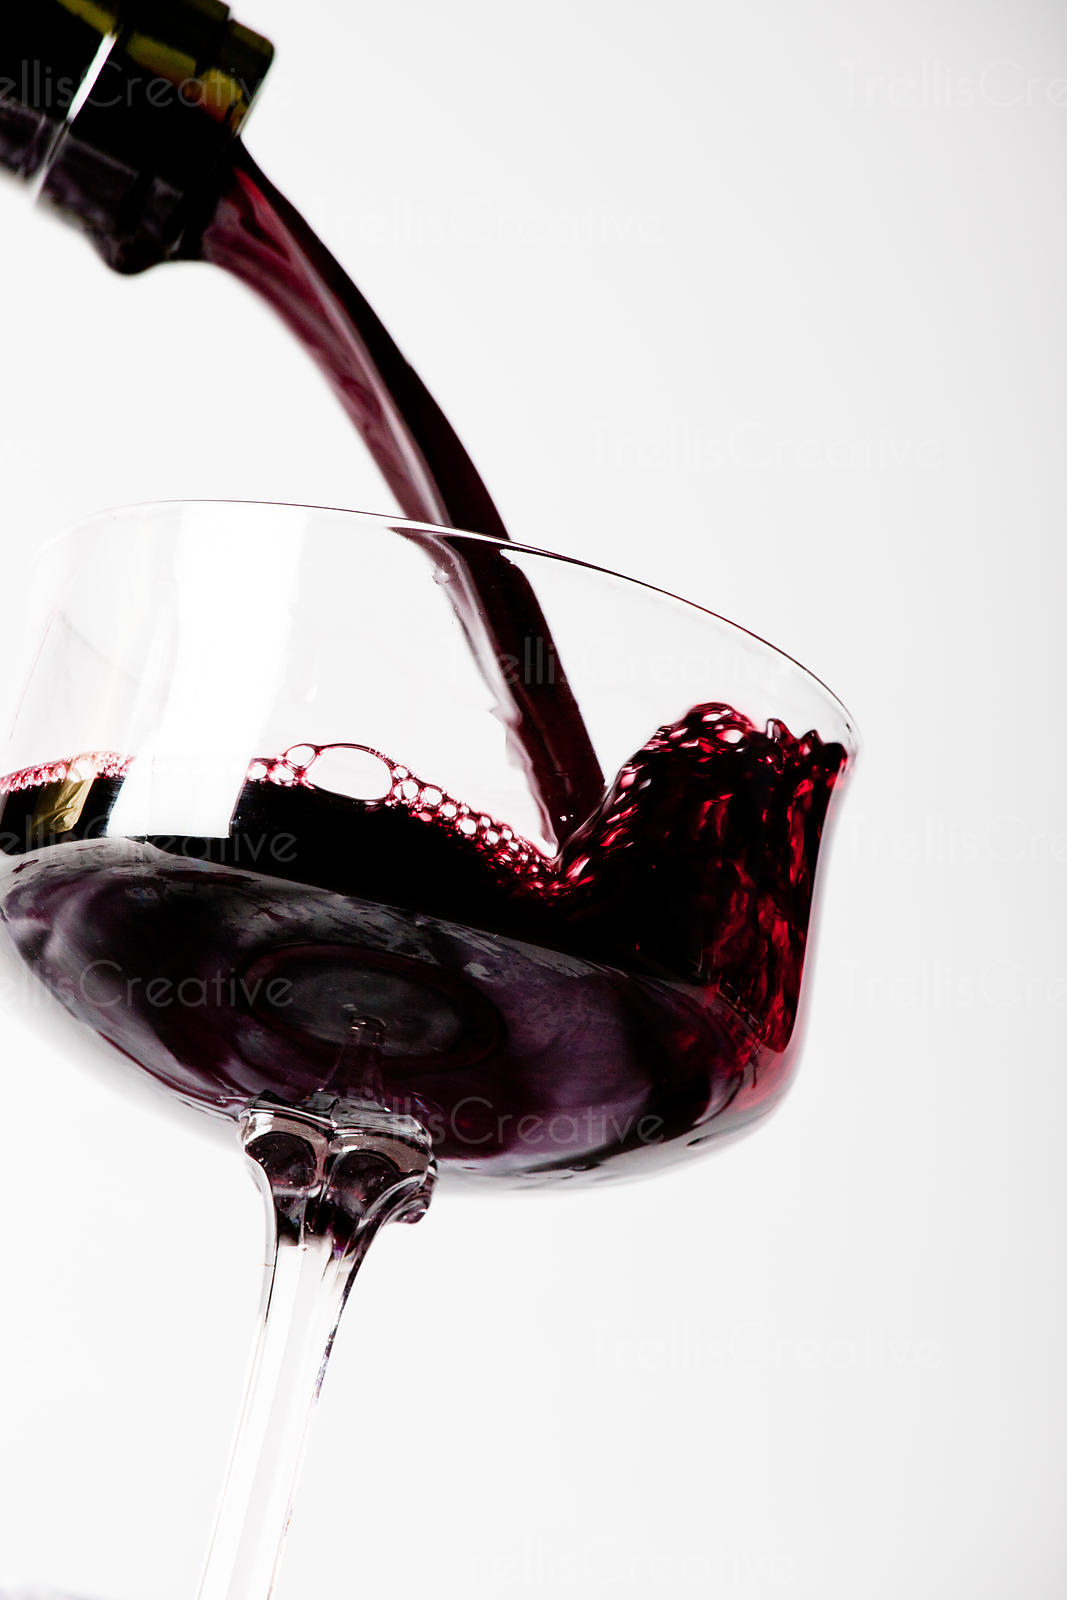 Quickly filling a shallow wine glass with red wine